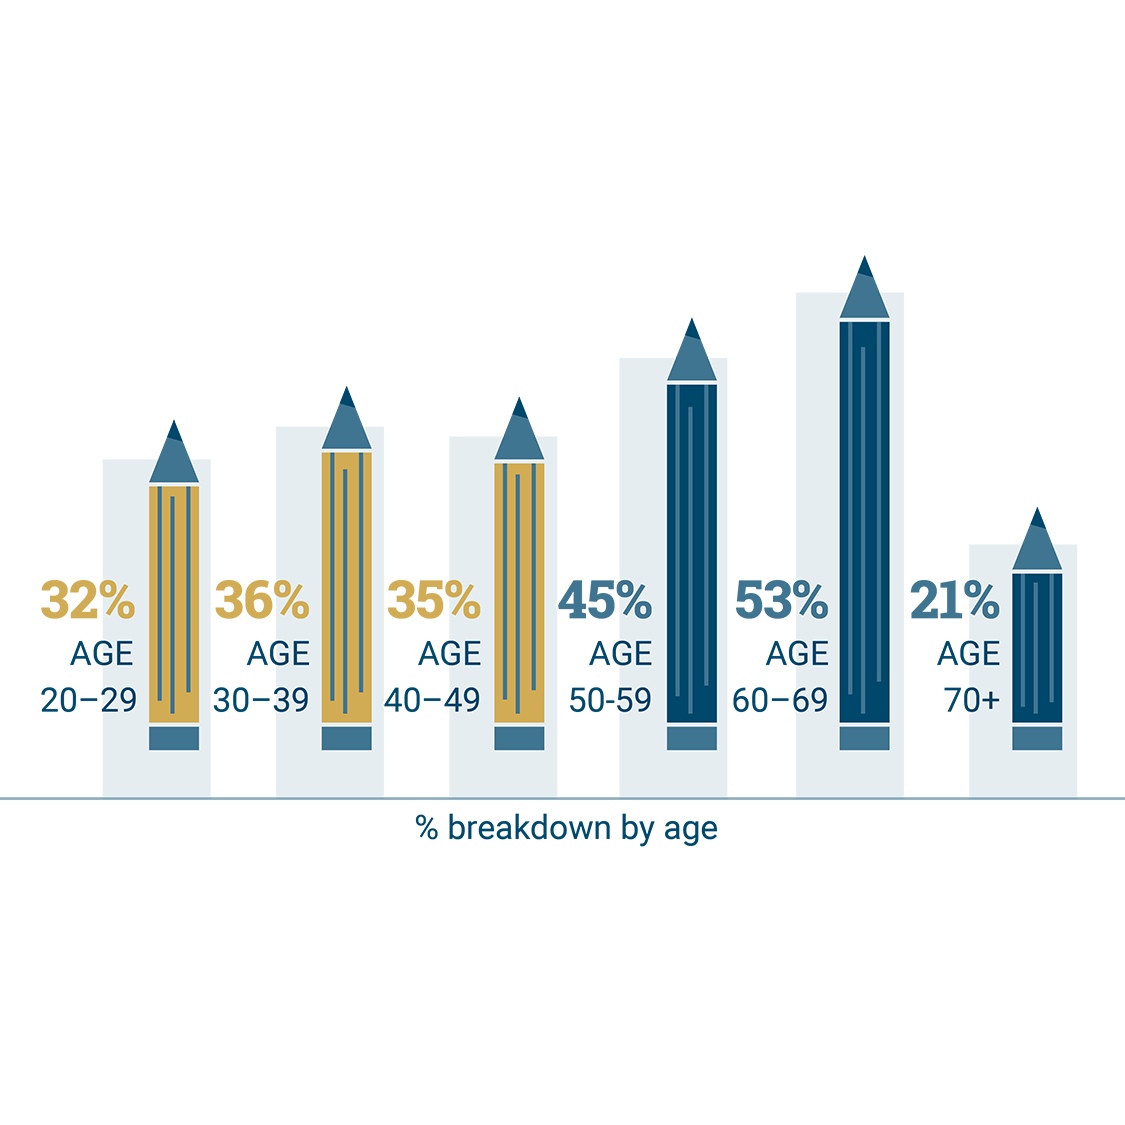 Across all age groups, educators are considering leaving the education profession in large numbers.